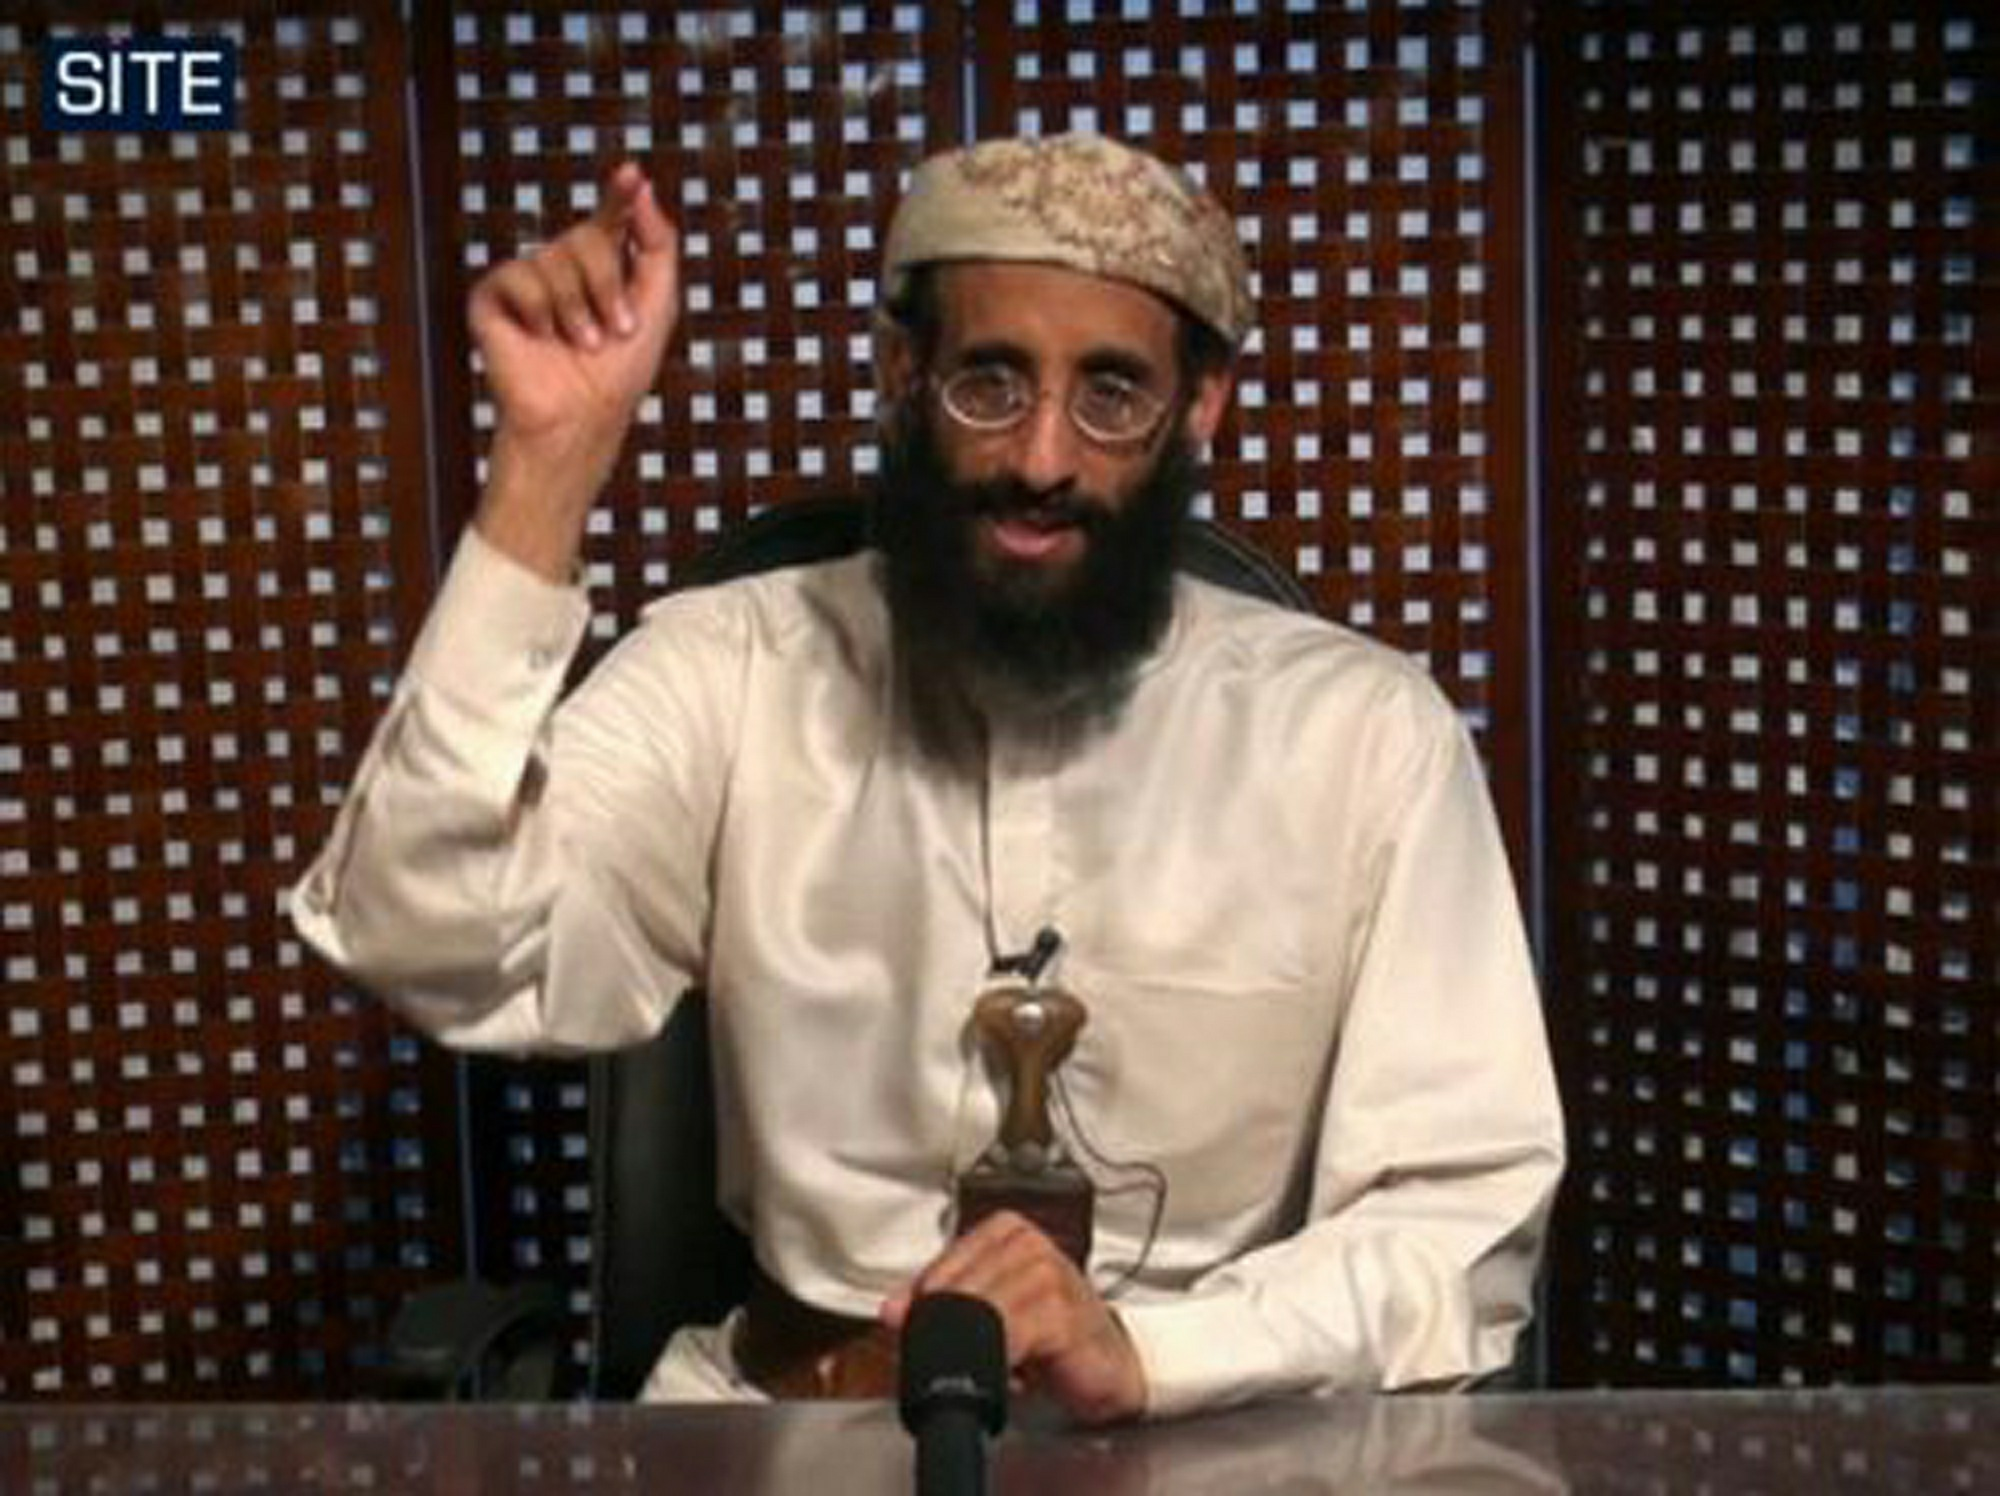 AQAP still threat to U.S. despite death of al-Awlaki